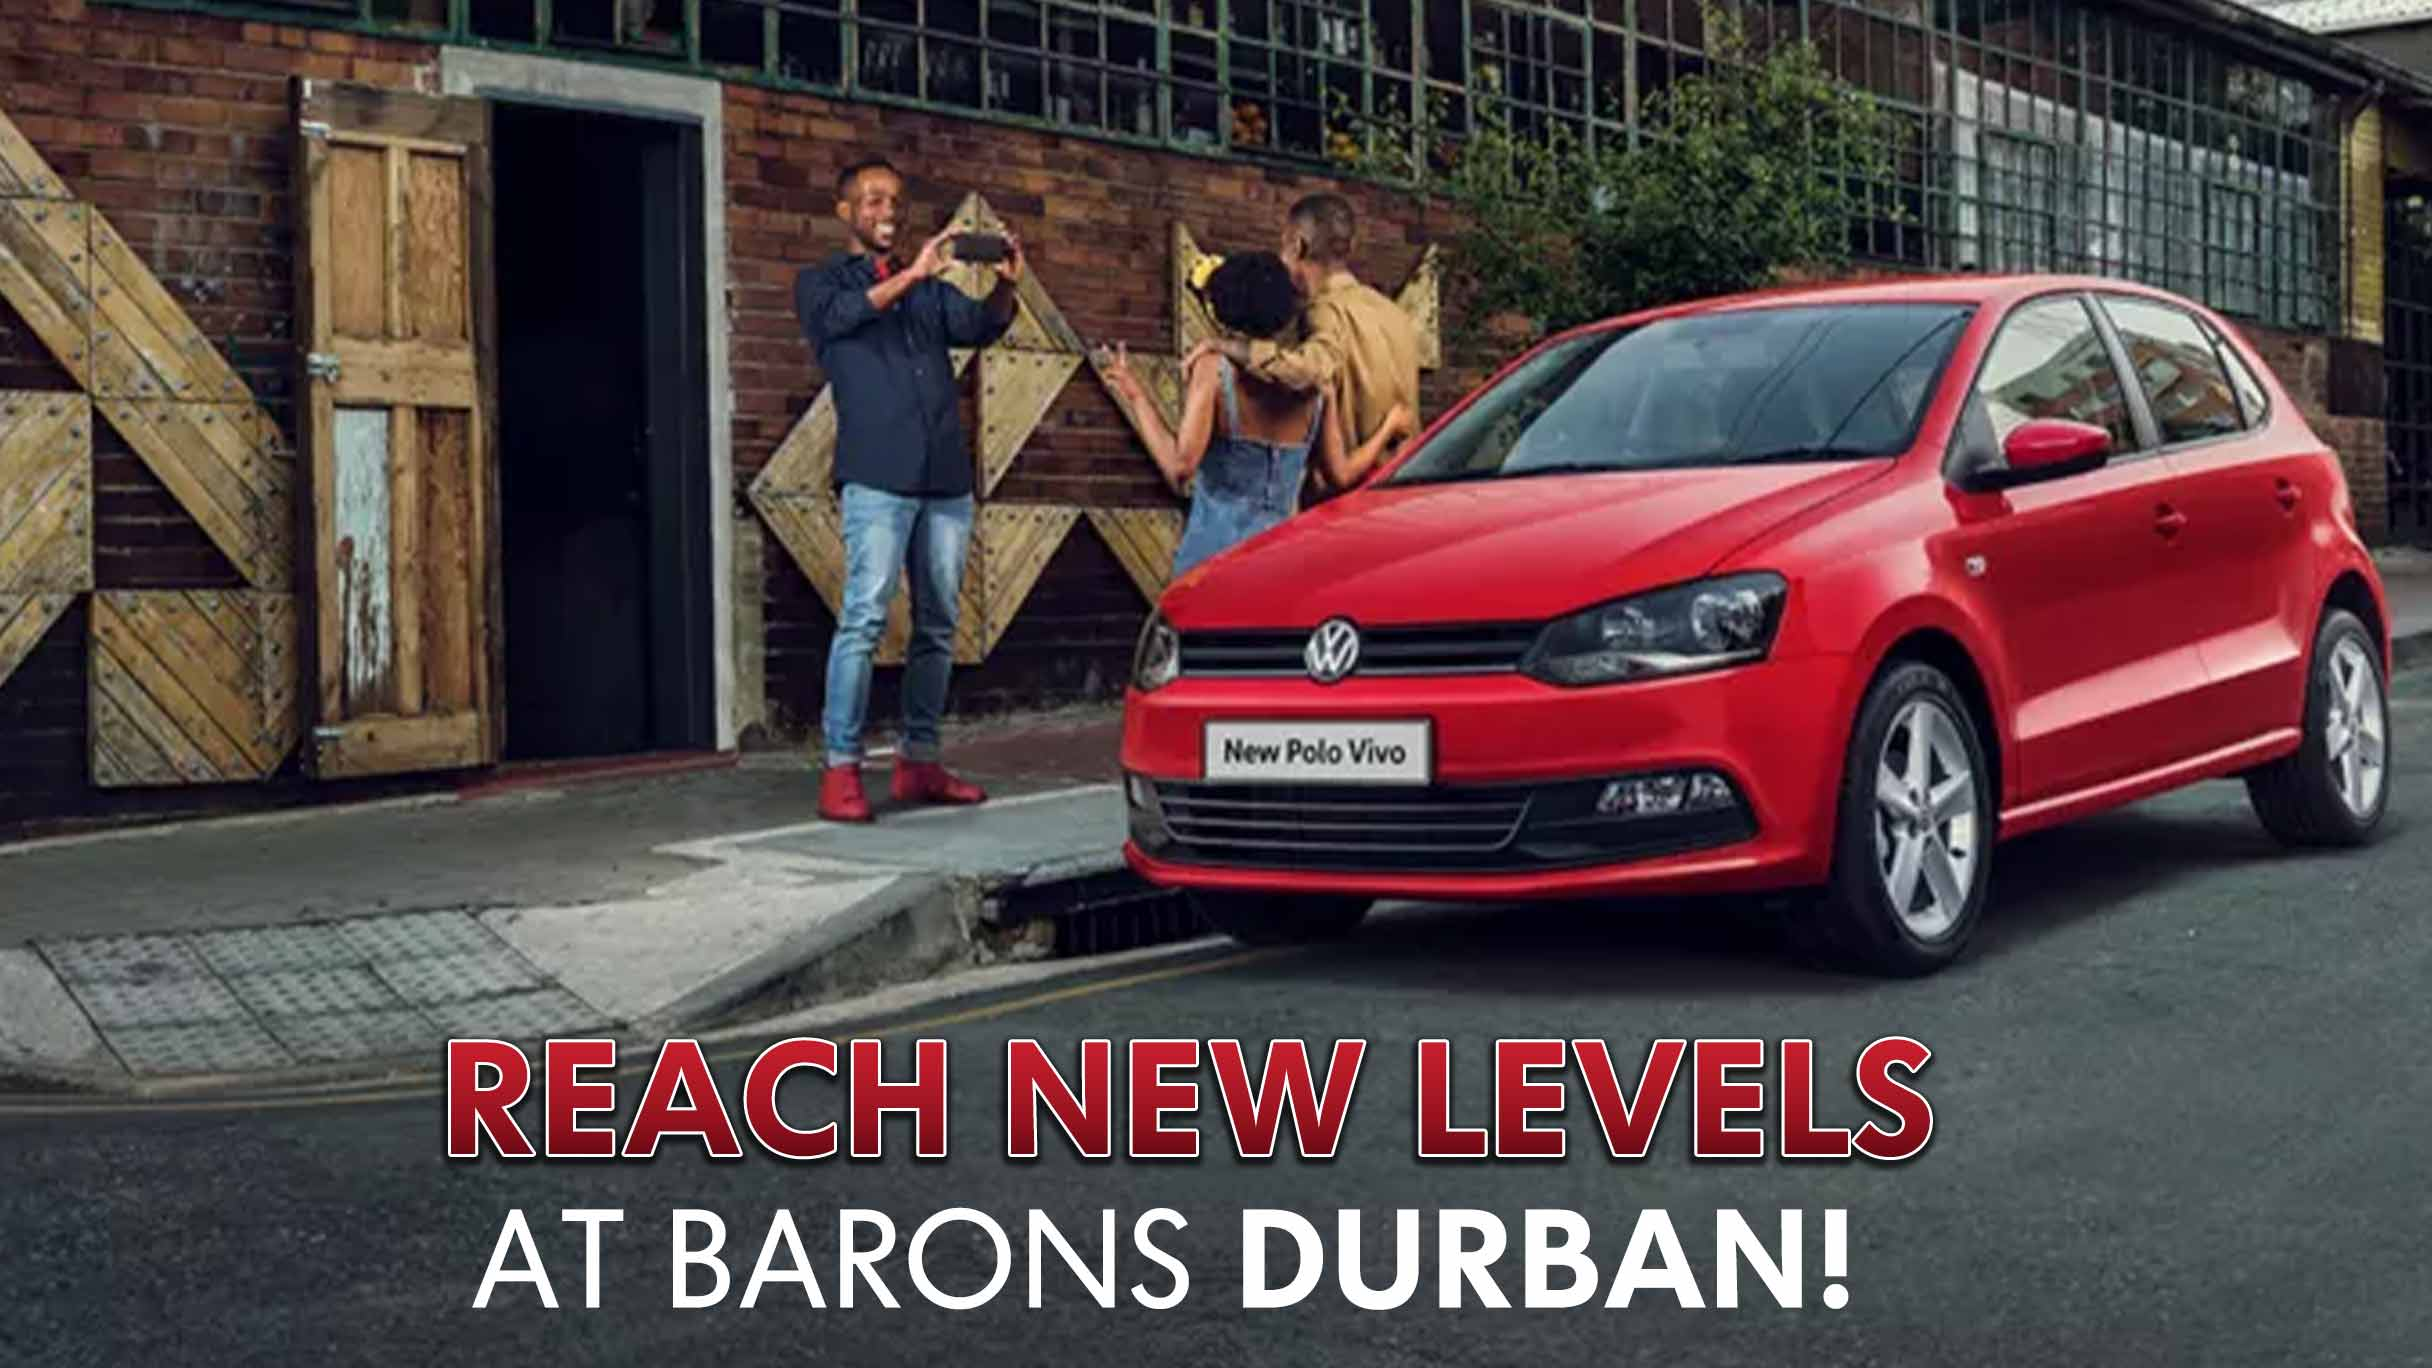 Barons Durban VW Polo 2020 upgrade offer